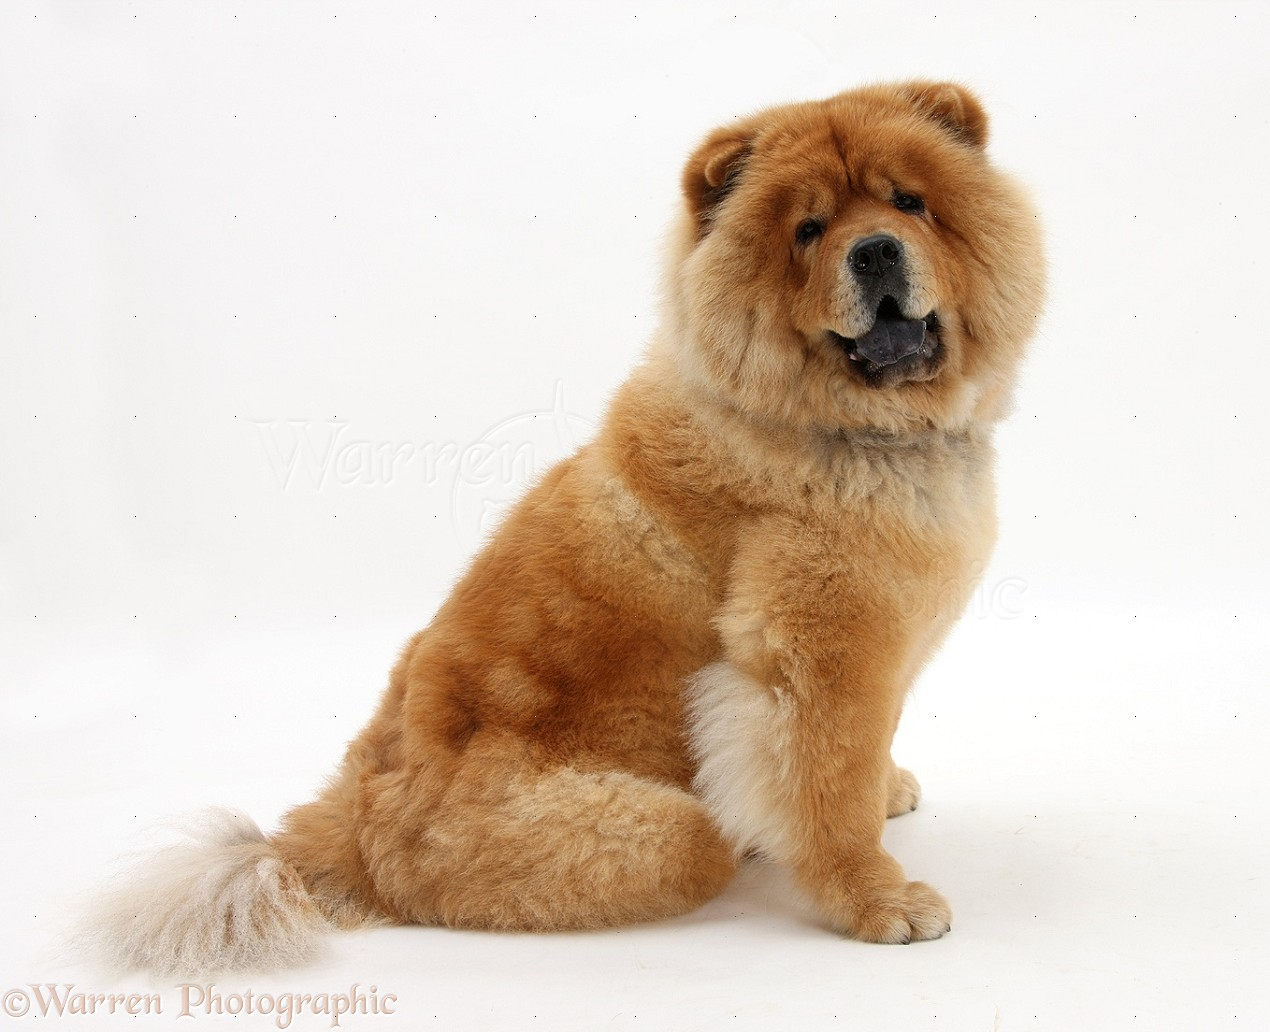 Wp21721 chow chow dog chico